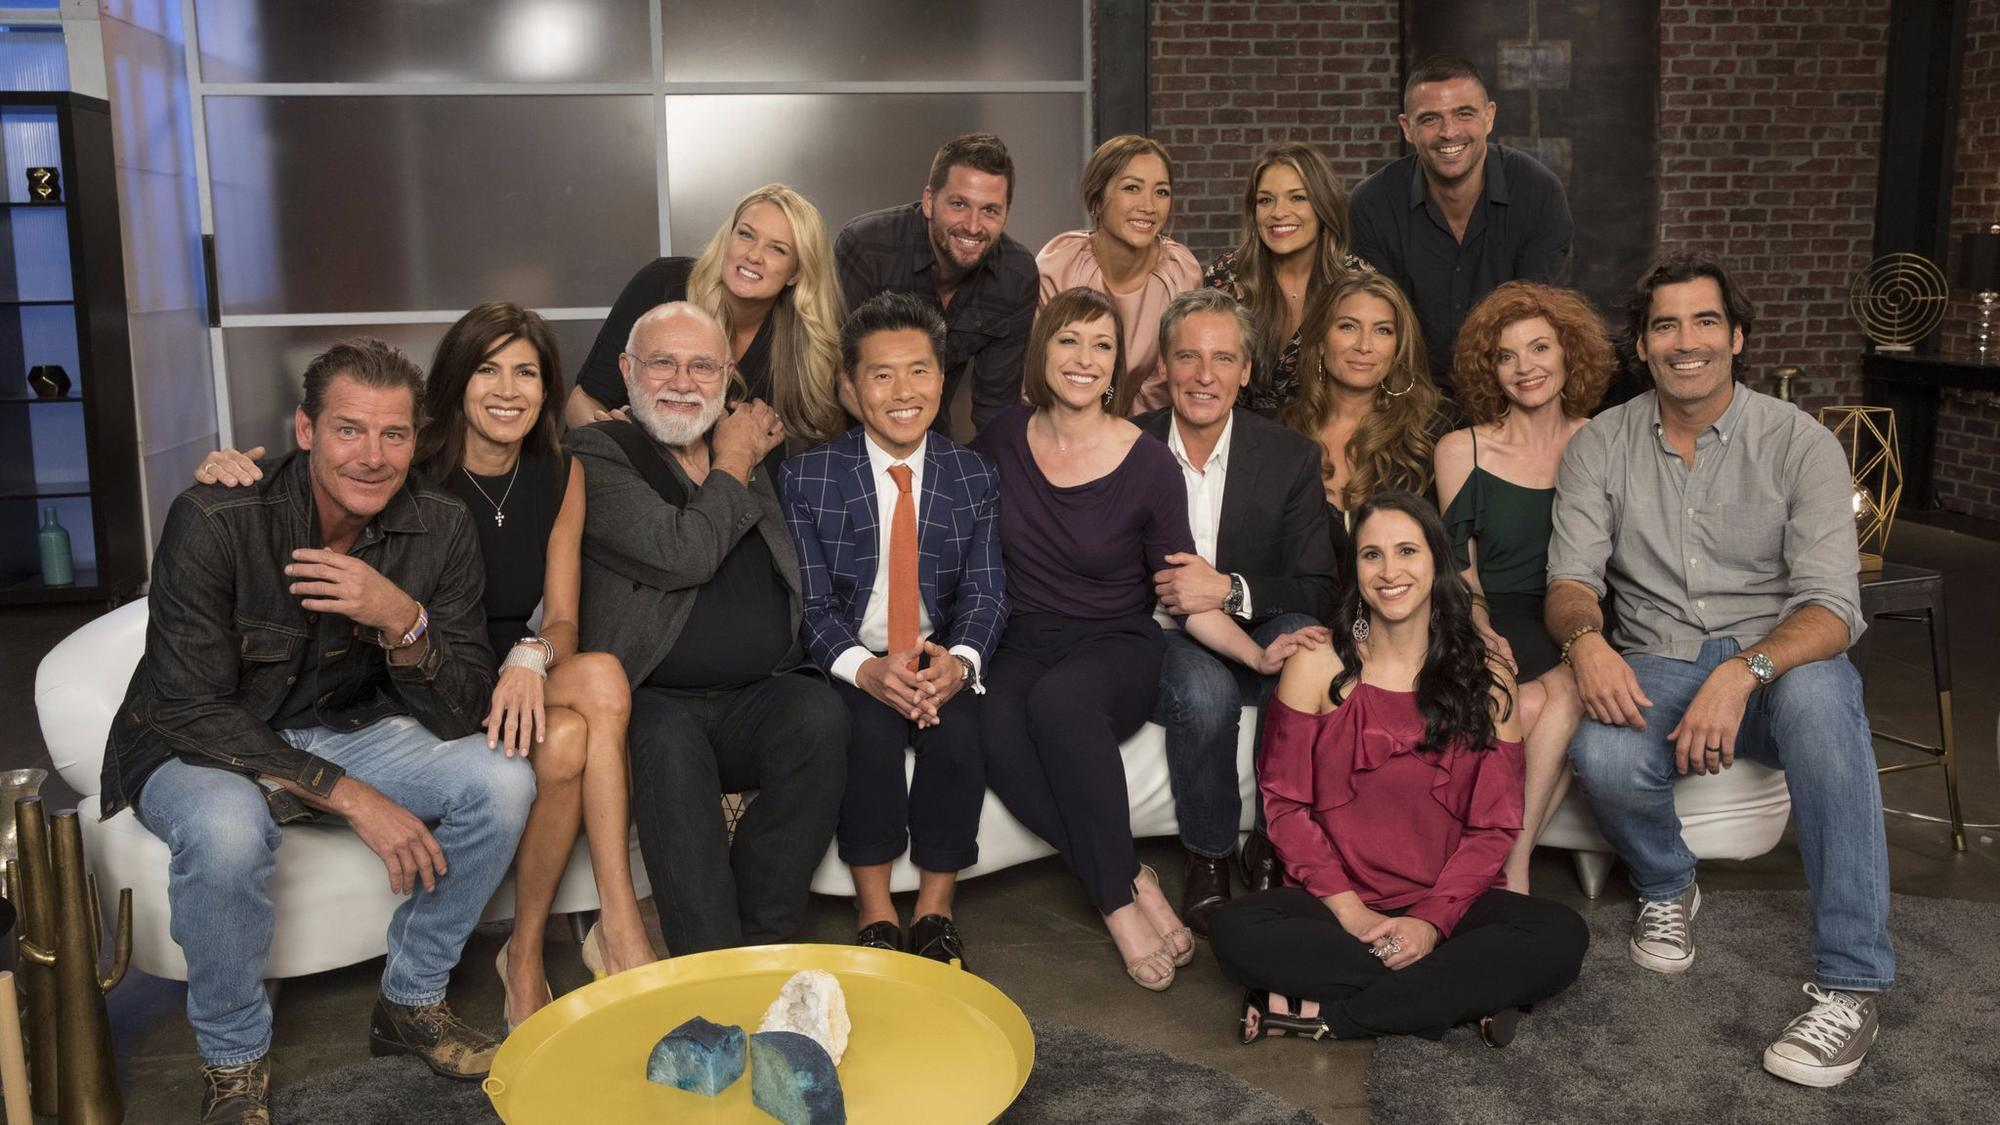 Trading Spaces Reunion Coming This Spring Orlando Sentinel